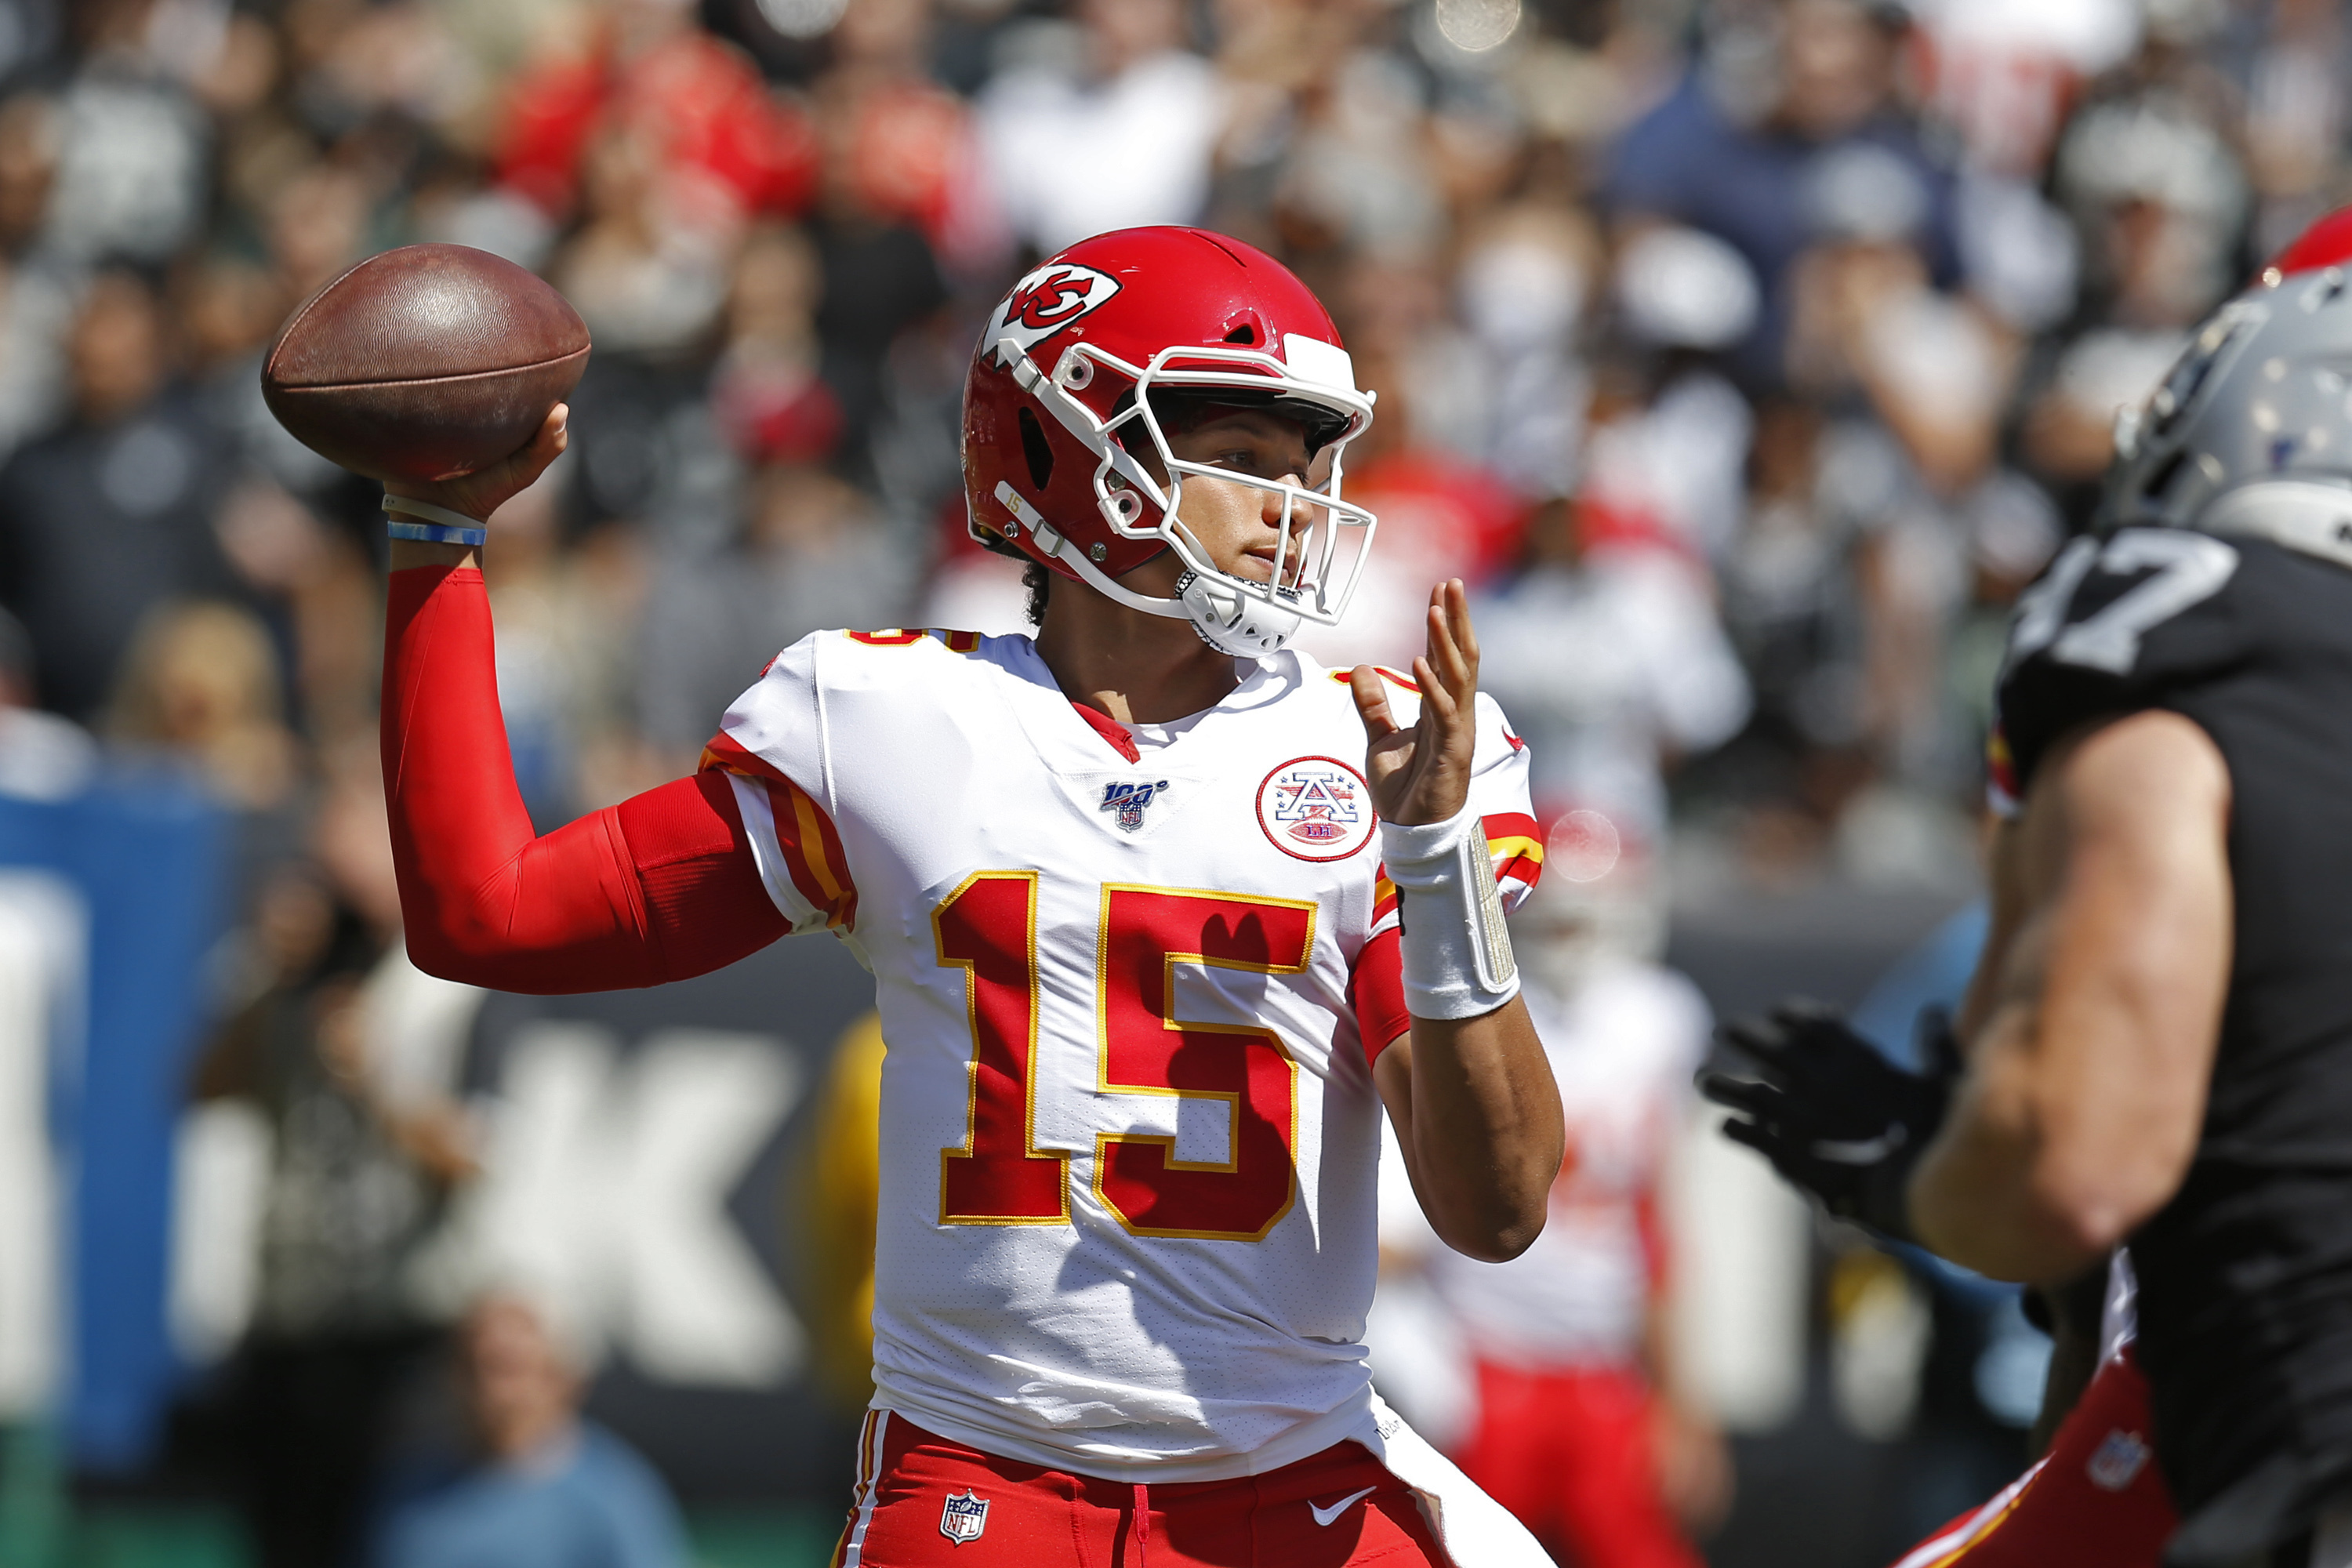 NFL week 3: Rain to create sloppy conditions in Kansas City, Seattle